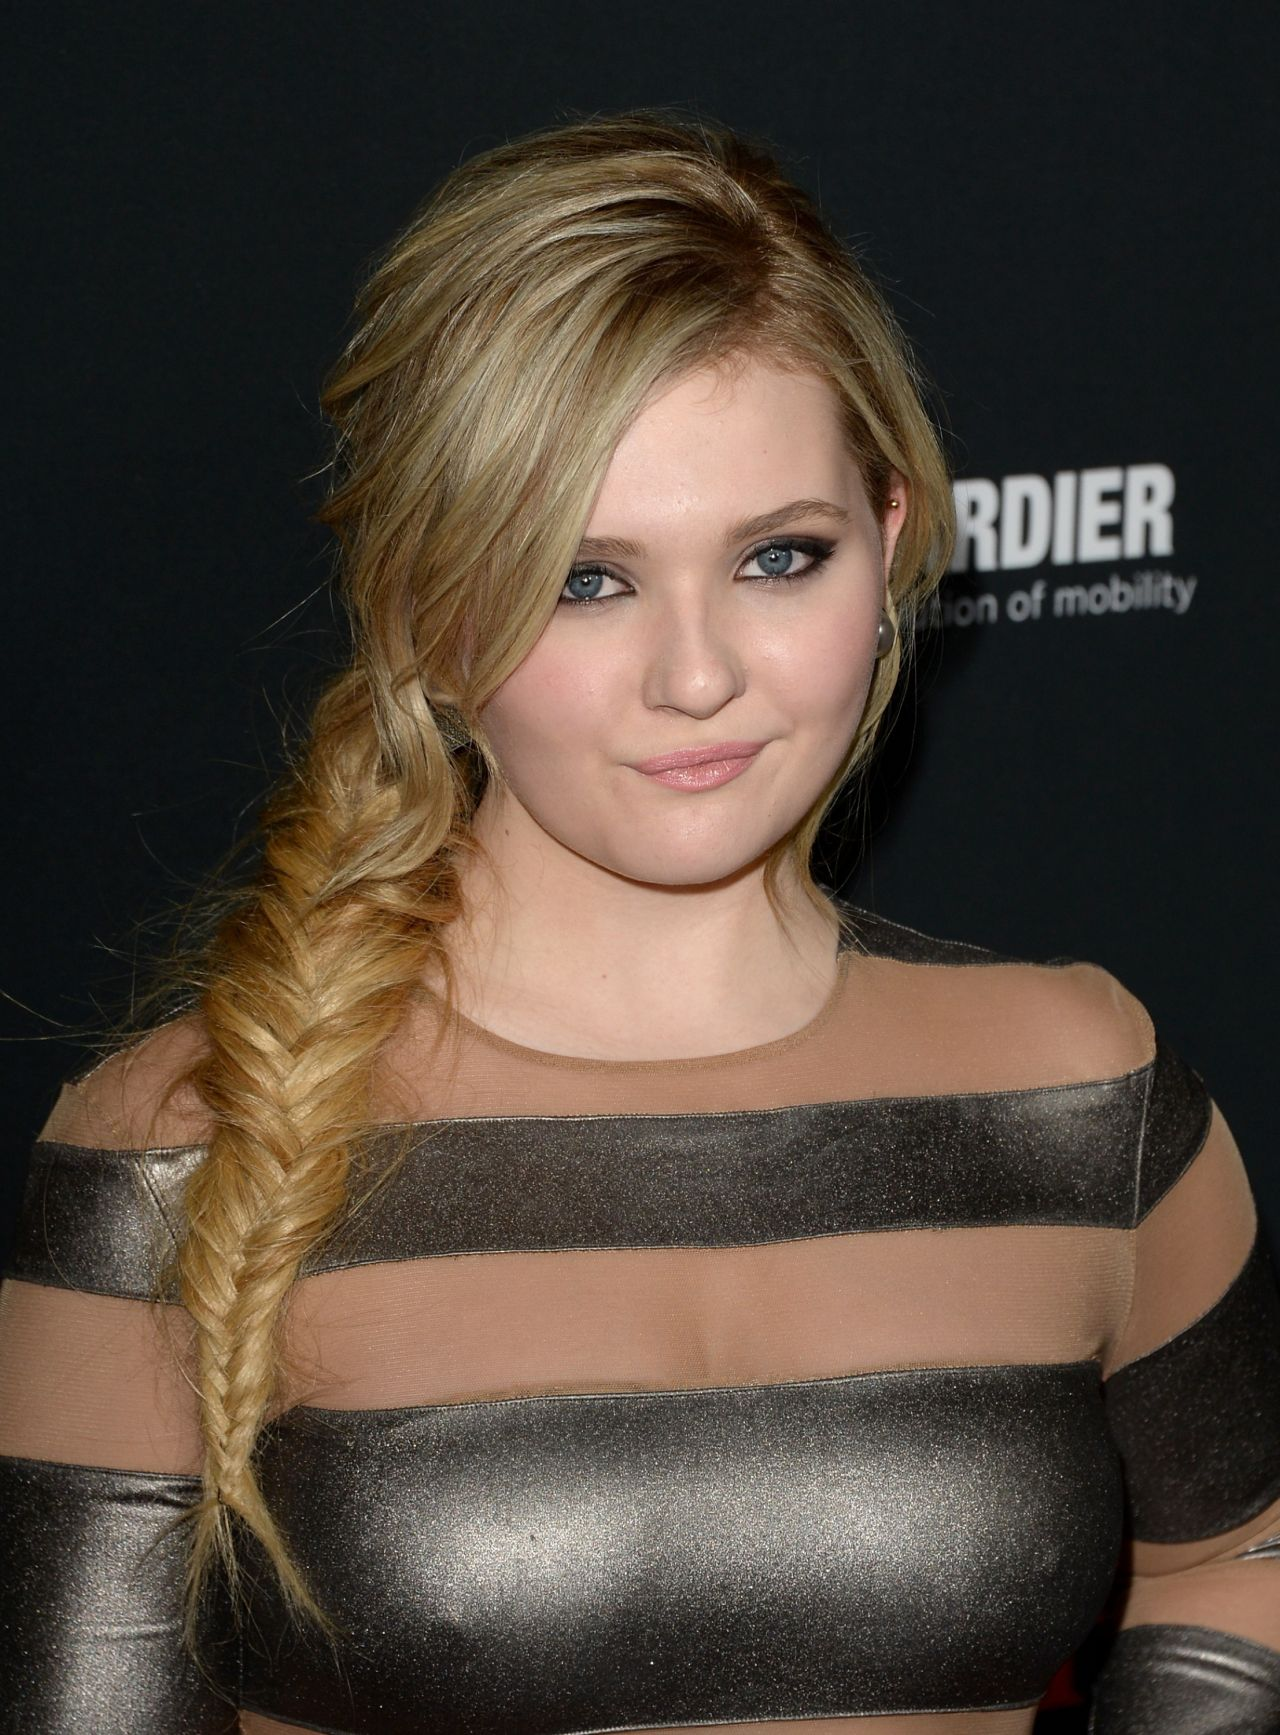 Abigail Breslin - AUGUST OSAGE COUNTY Movie Premiere in ...